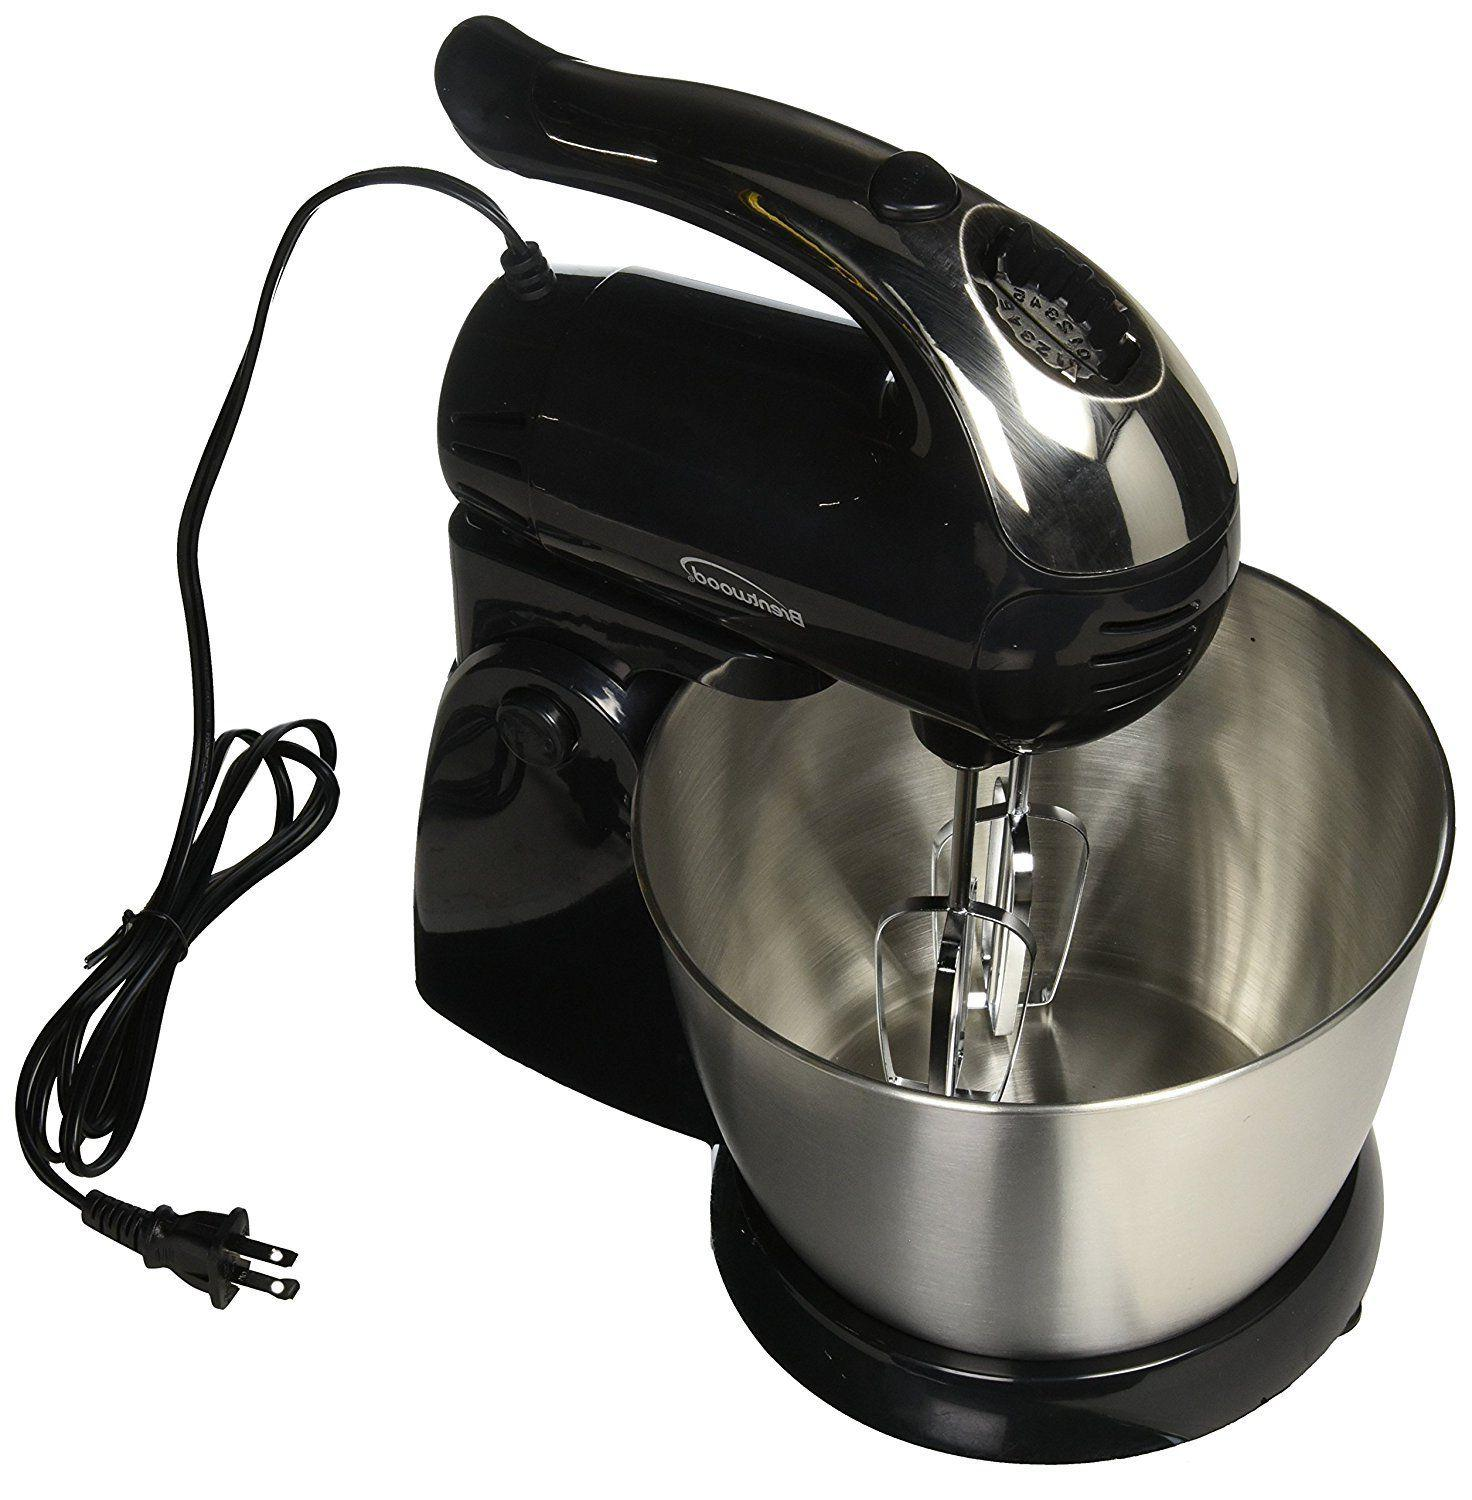 BRAND 5-Speed Turbo Mixer,